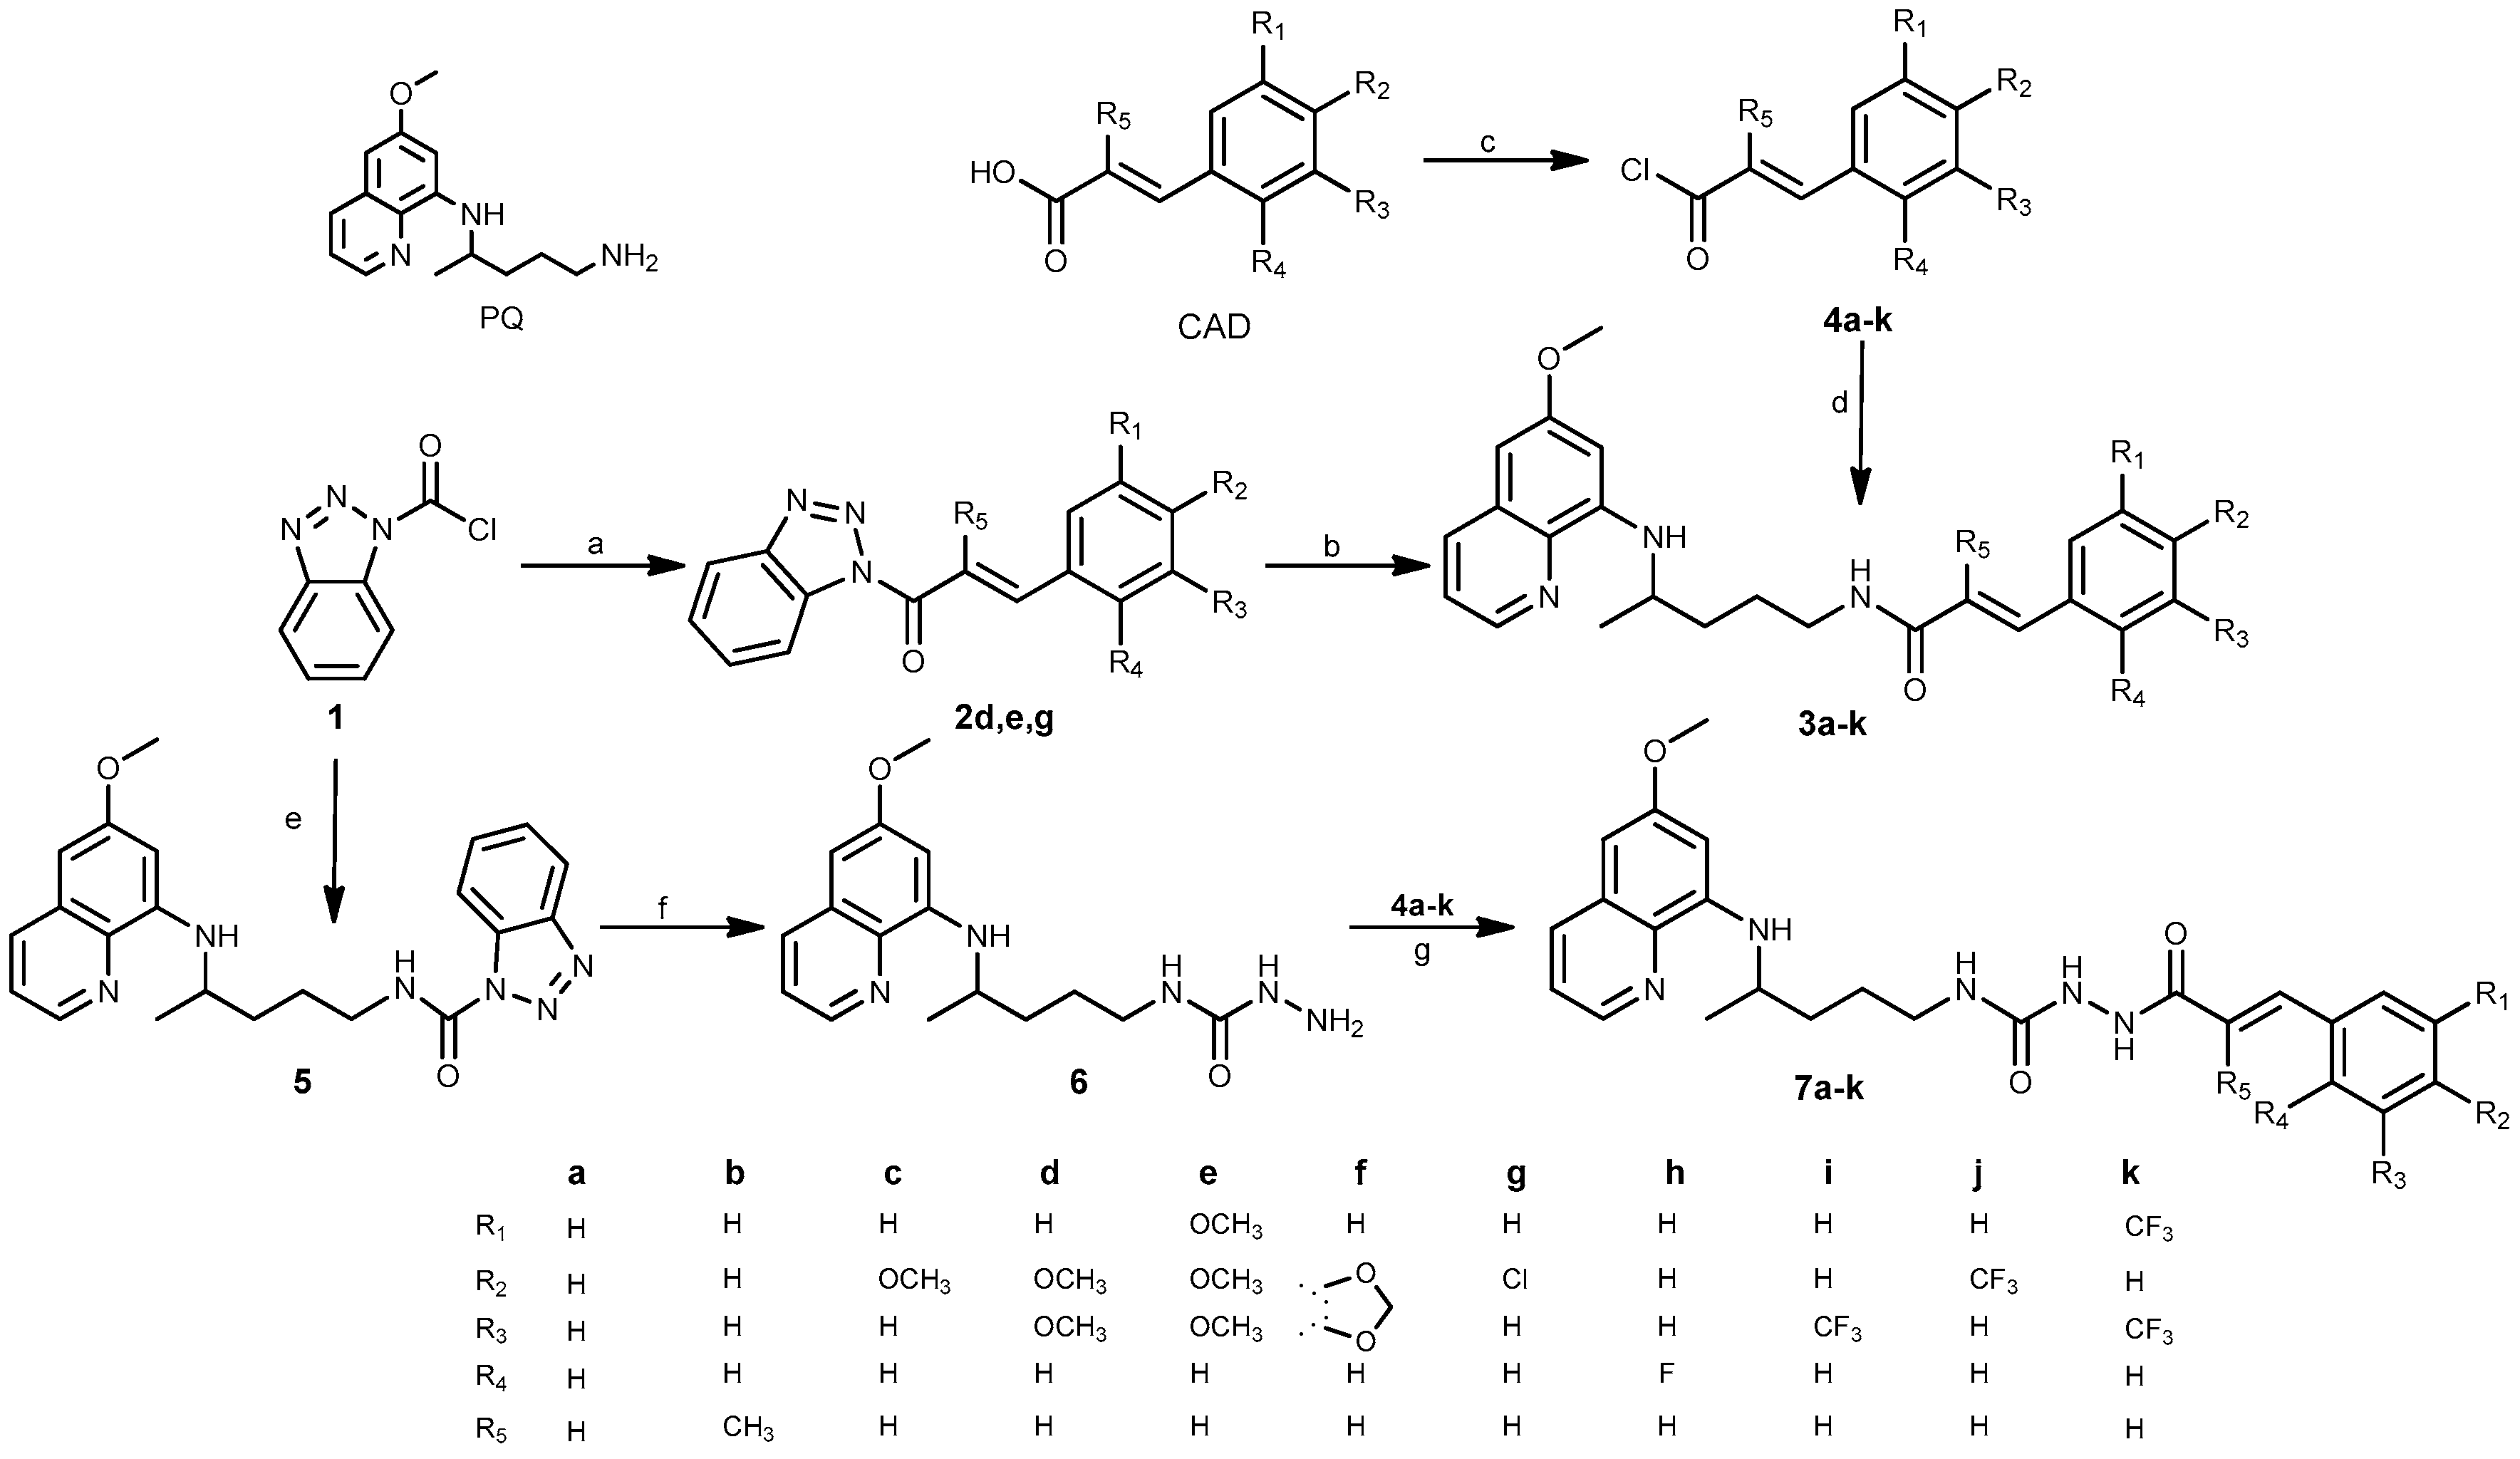 Molecules 21 01629 sch001